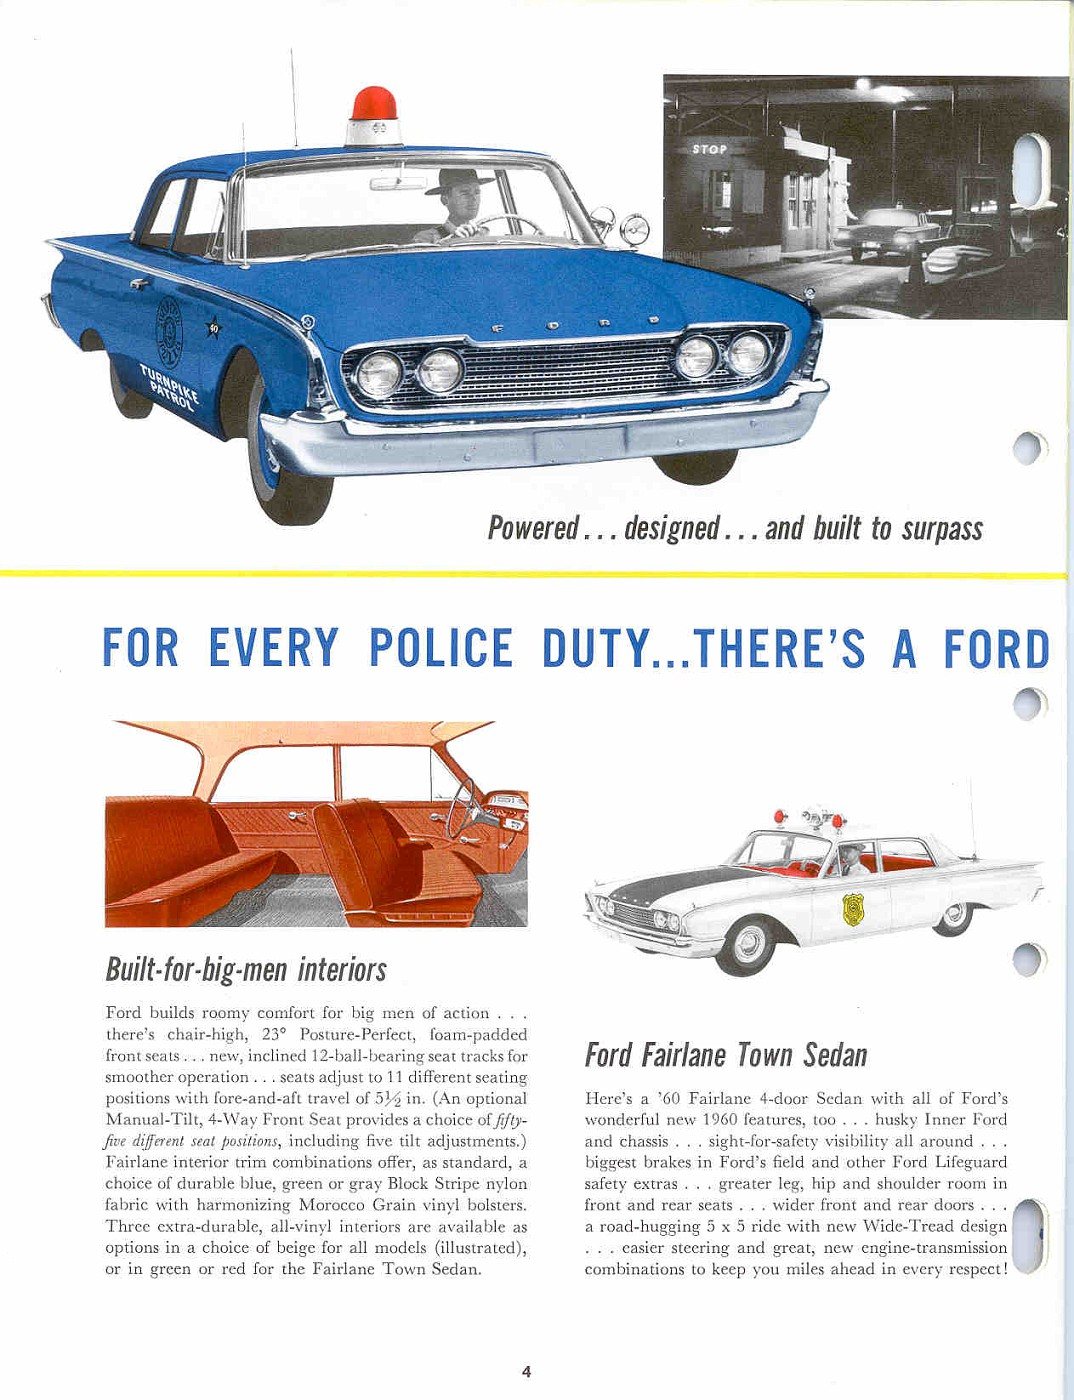 1960 Ford 04